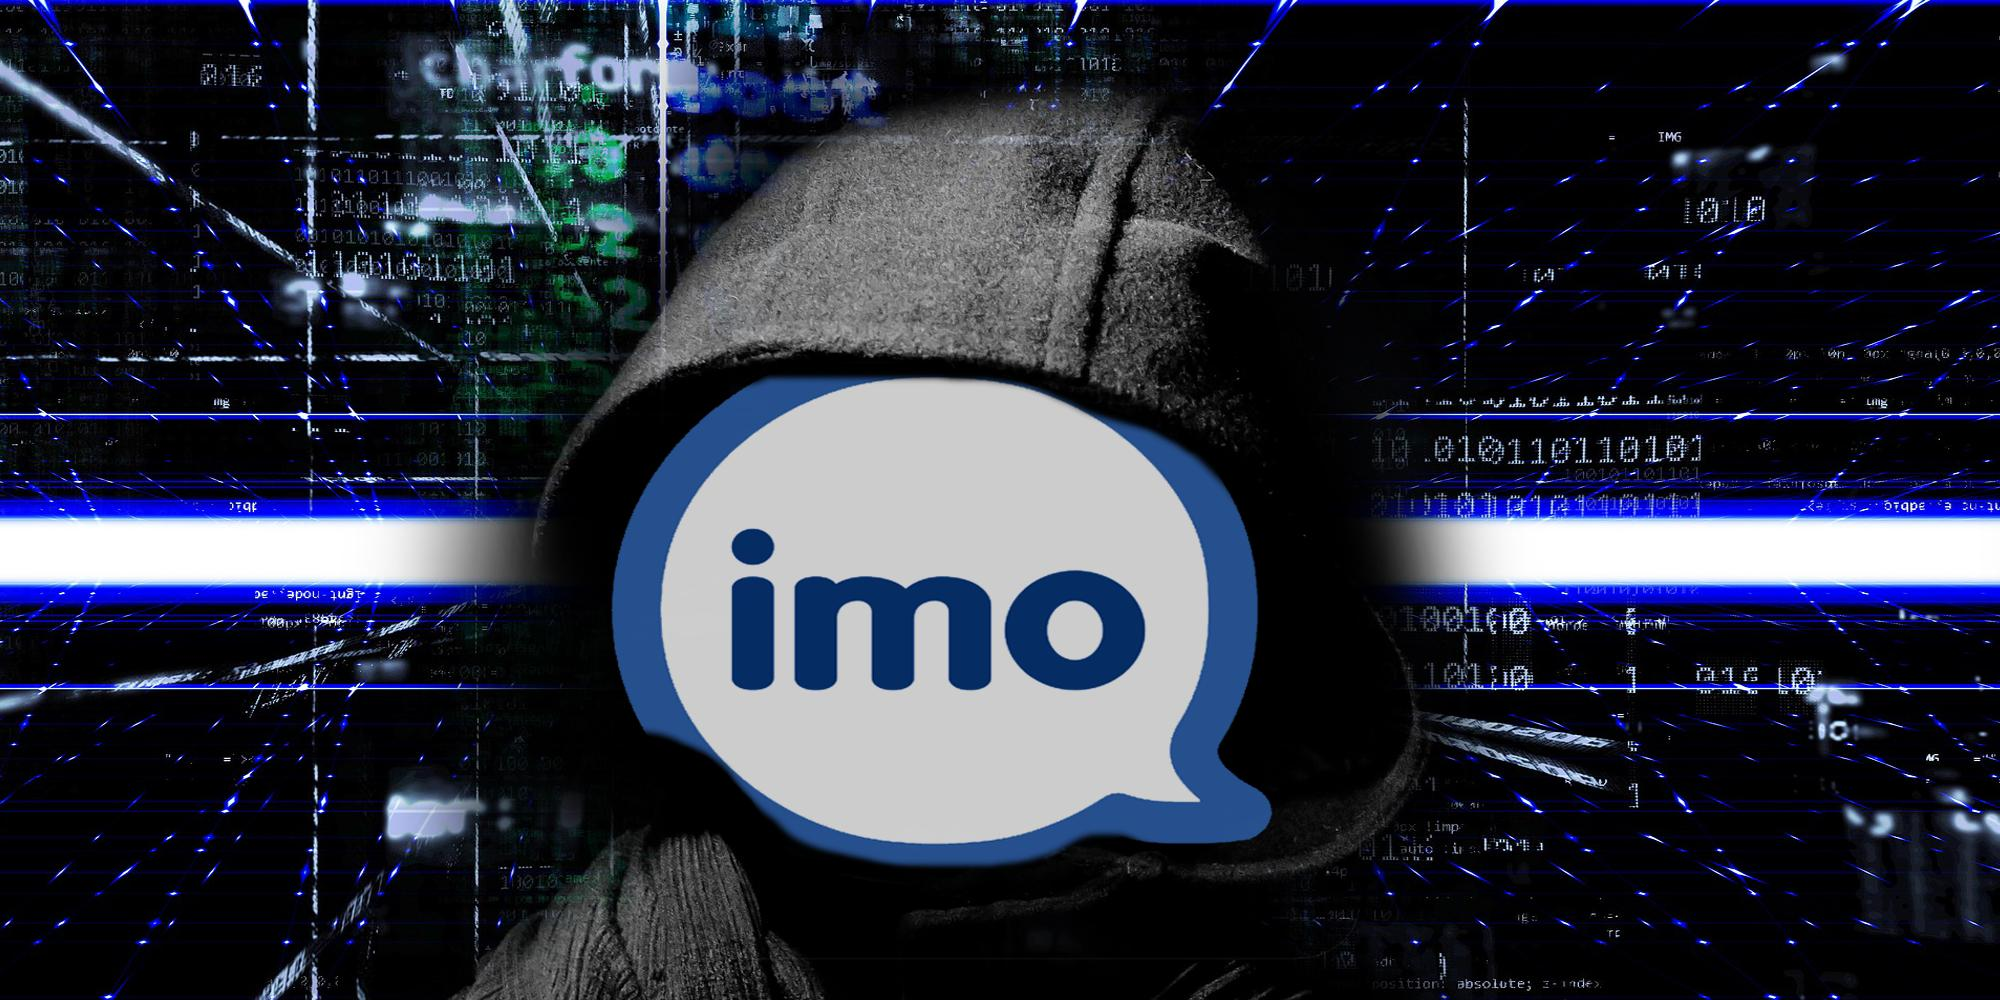 Prank Imo Hack Account, Imo conversation & images for Android - APK